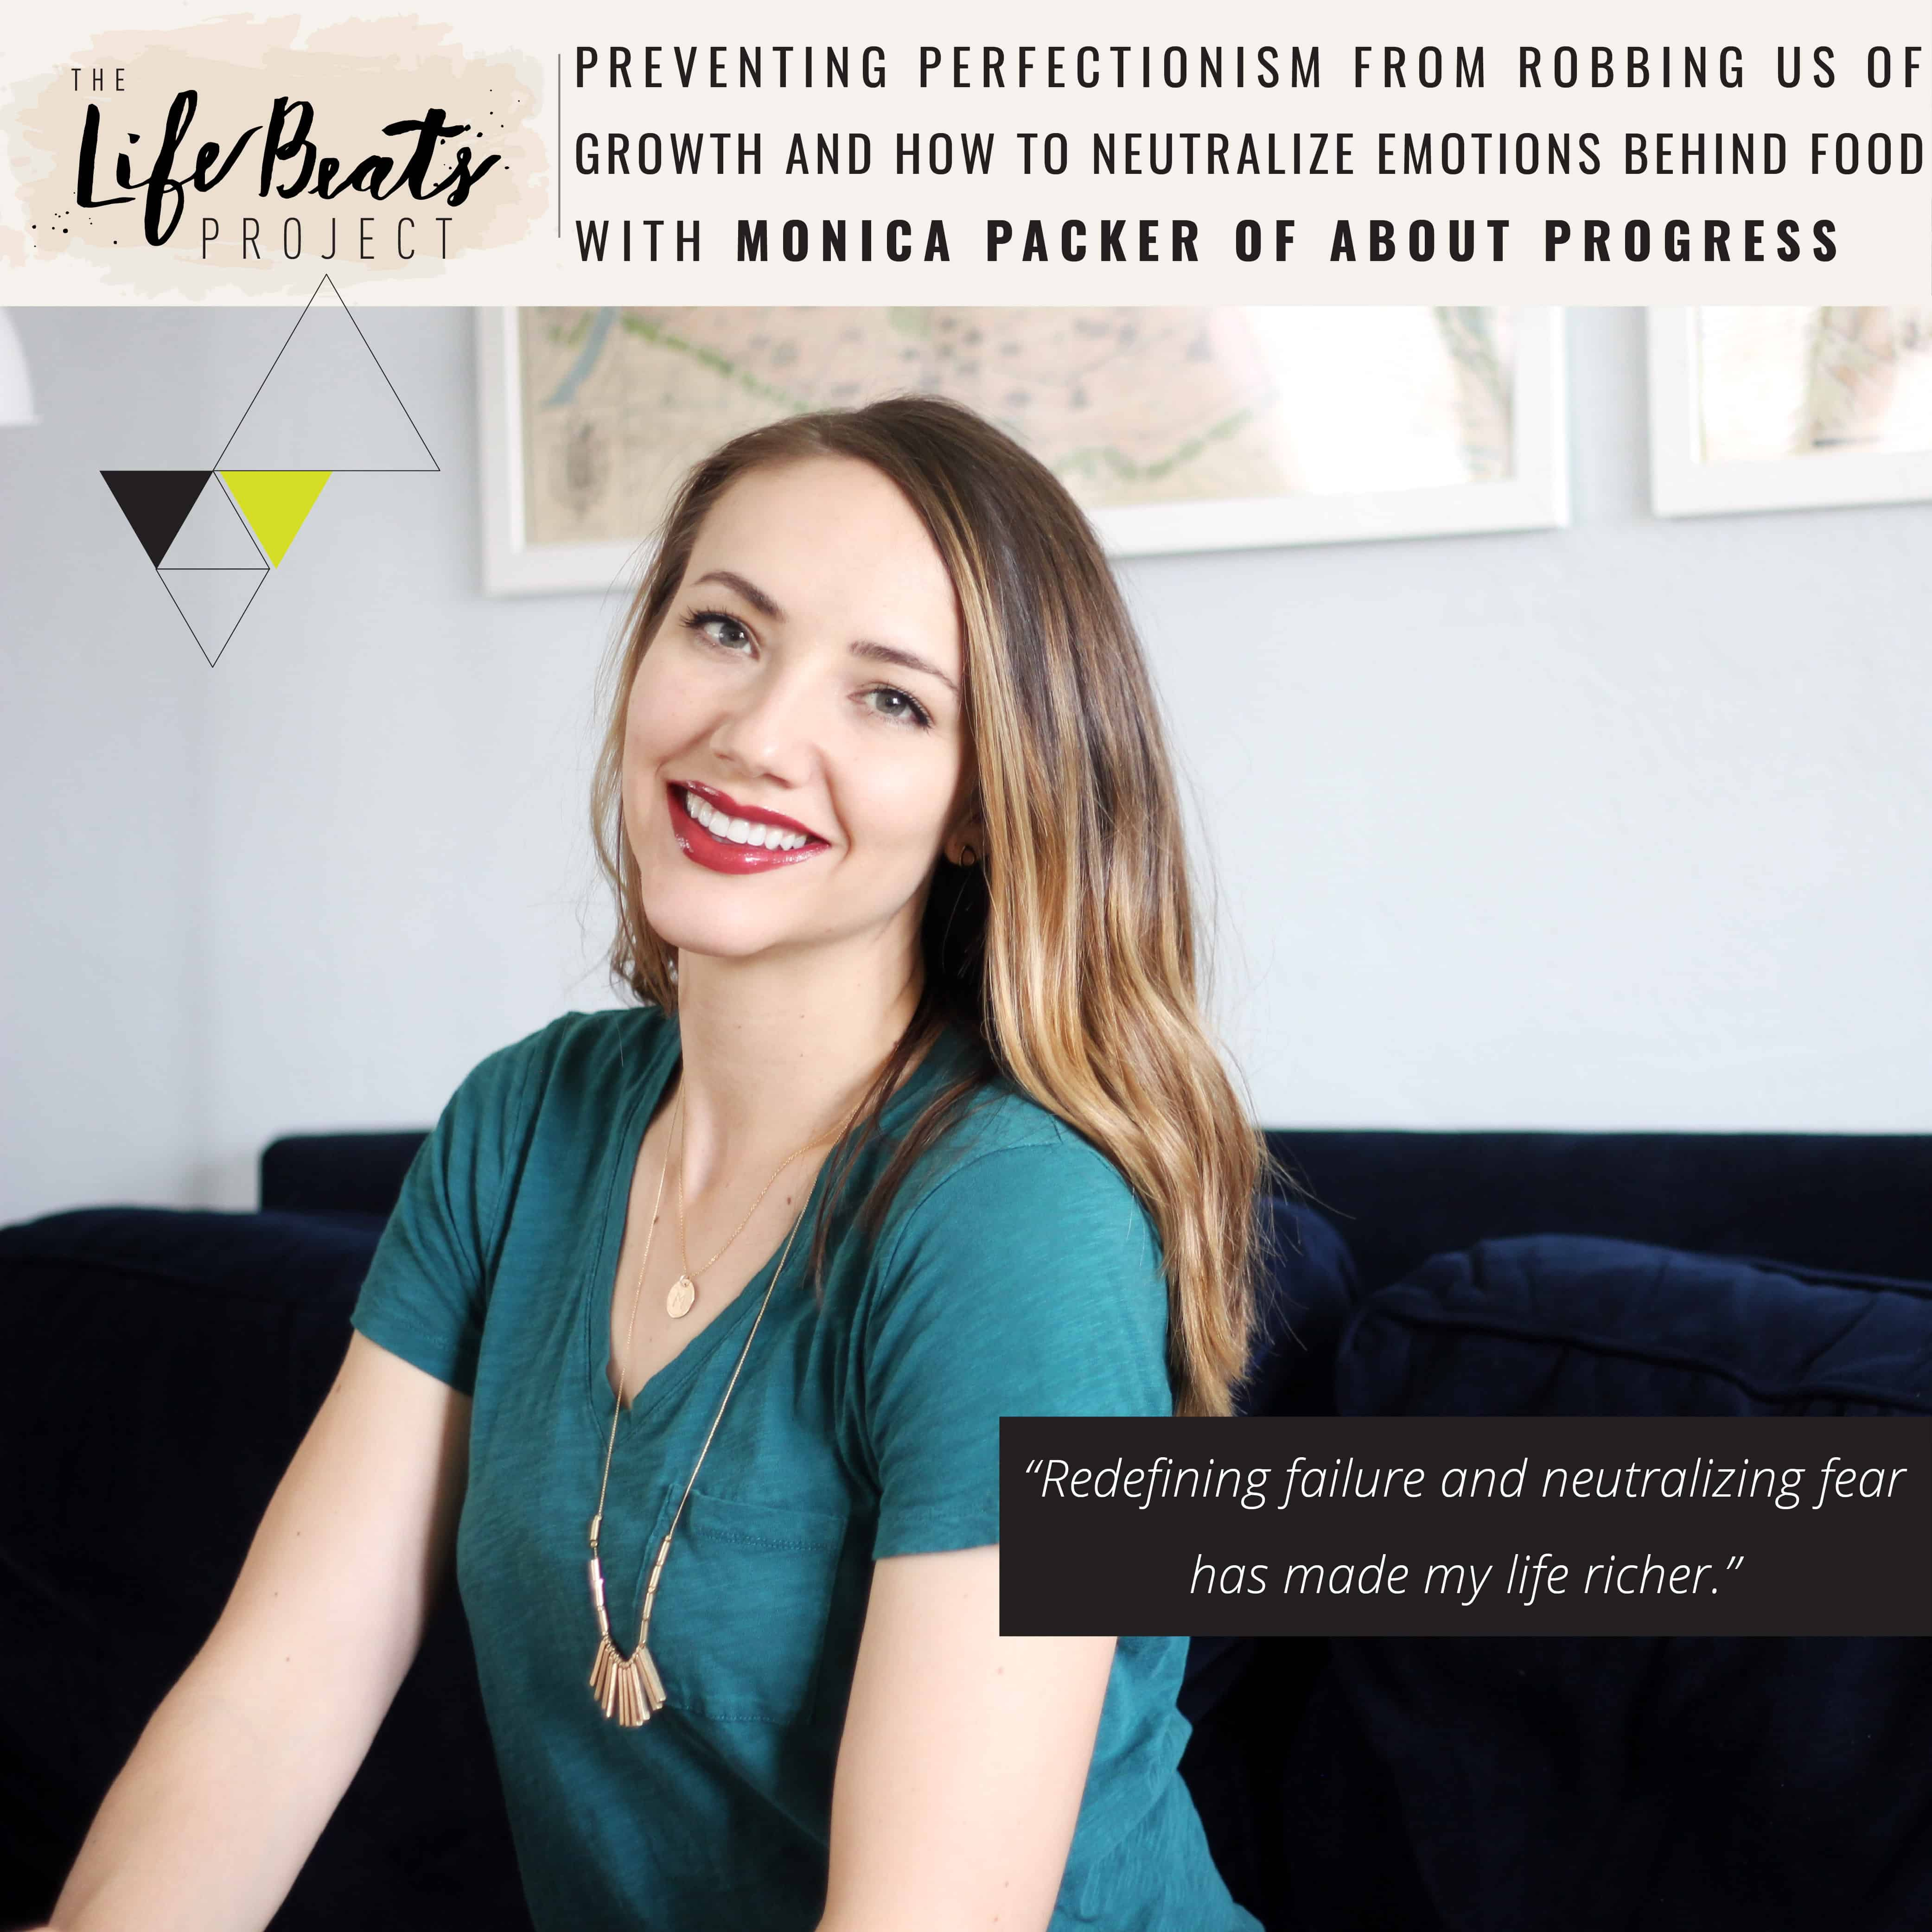 Monica Packer ABout Progress podcast LIfeBeats Project eating disorder anorexia perfectionism